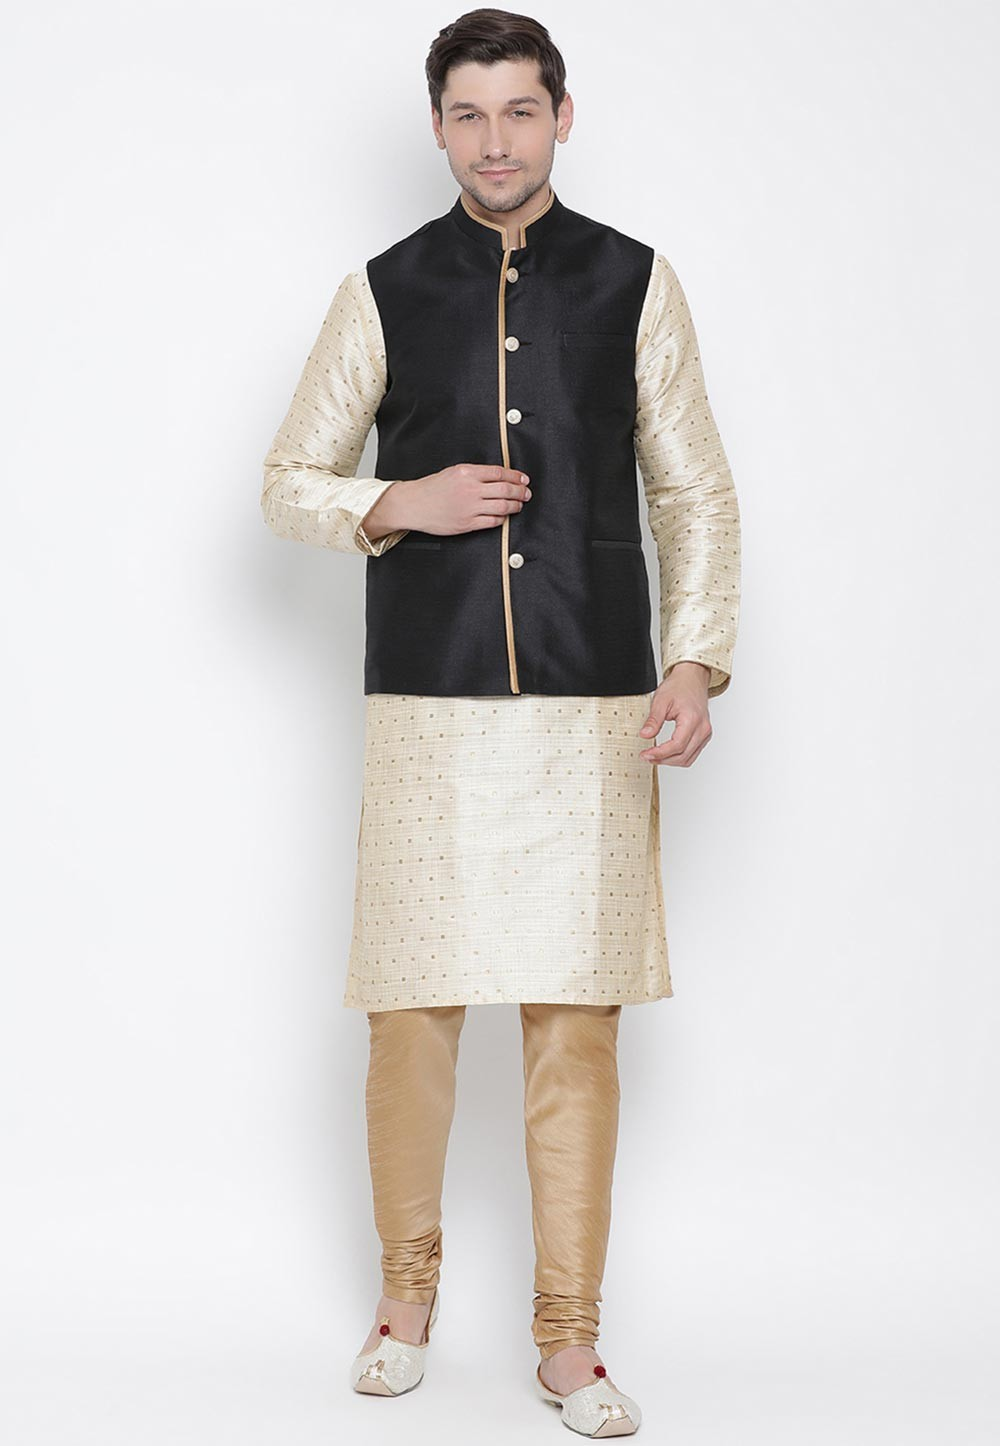 Golden,Black Readymade Kurta Pajama Jacket.